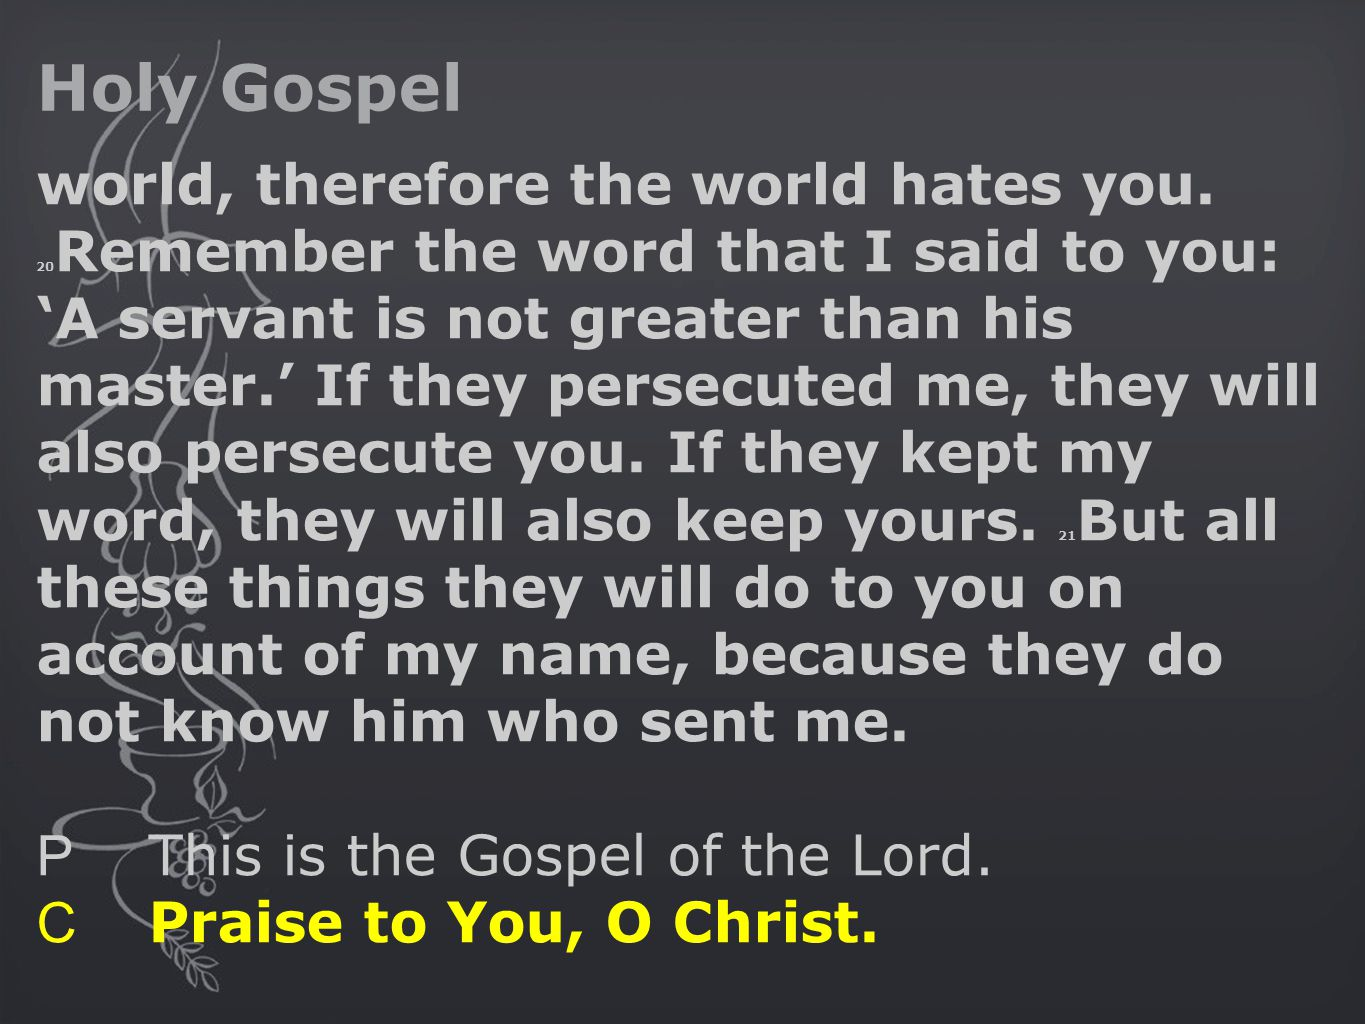 Holy Gospel world, therefore the world hates you.